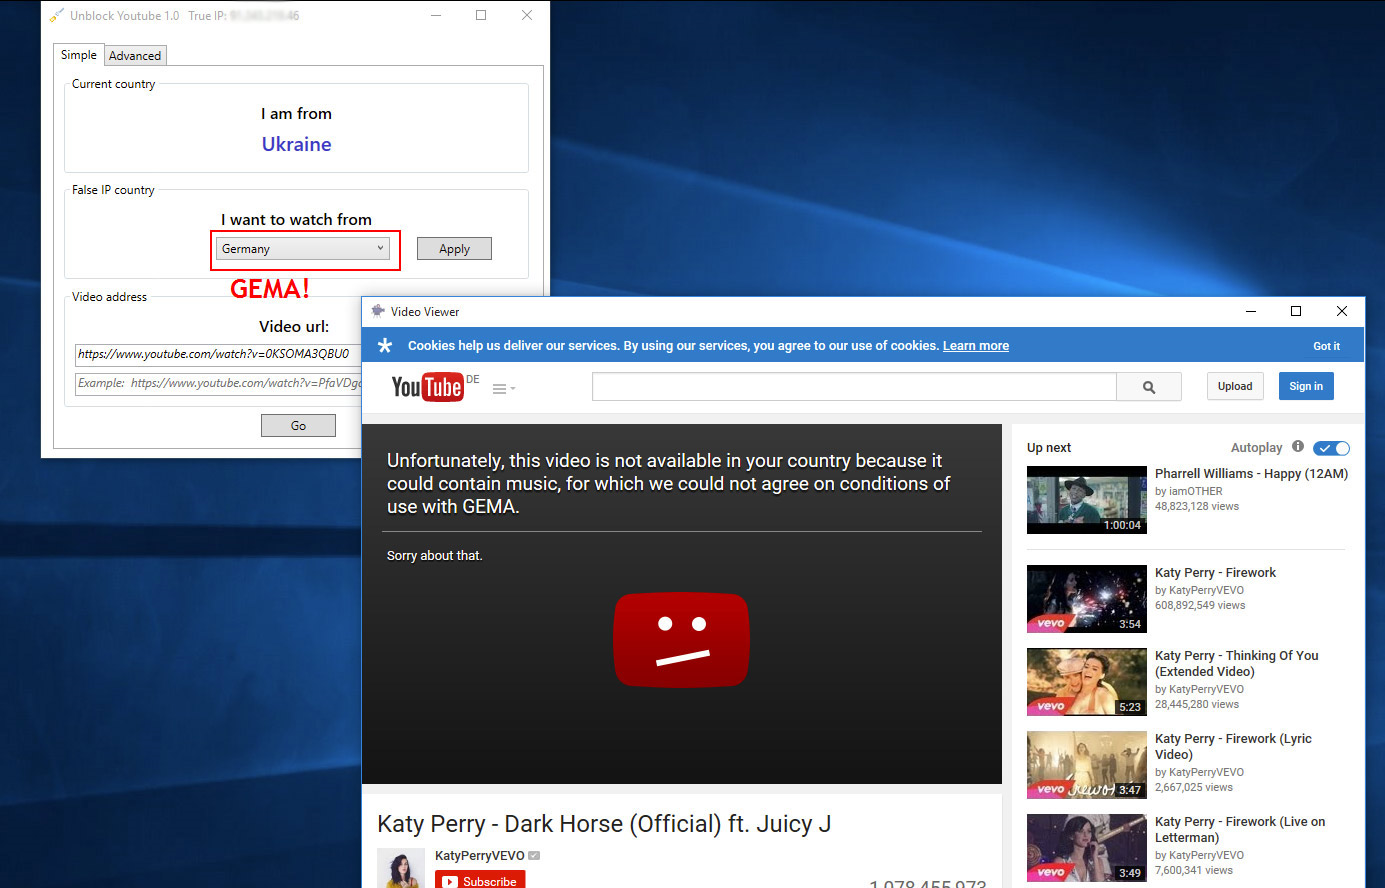 Unblock Youtube, Privacy Software Screenshot